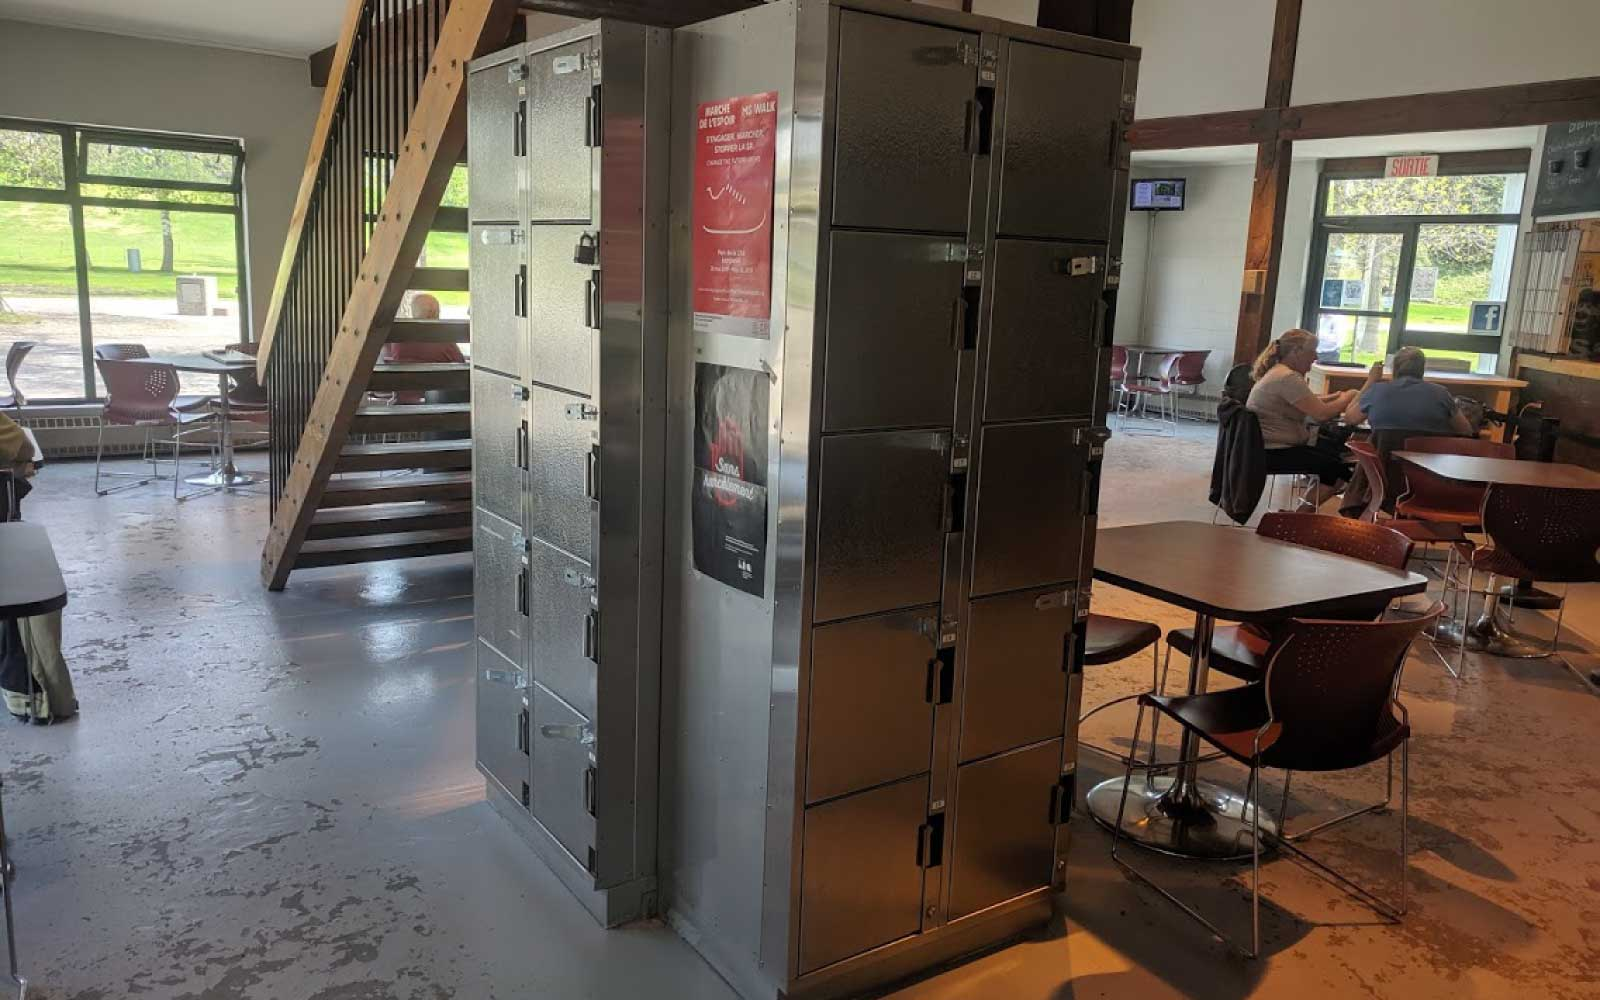 At Longueuil's Michel Chartrand park, there are lockers in the reception pavilion